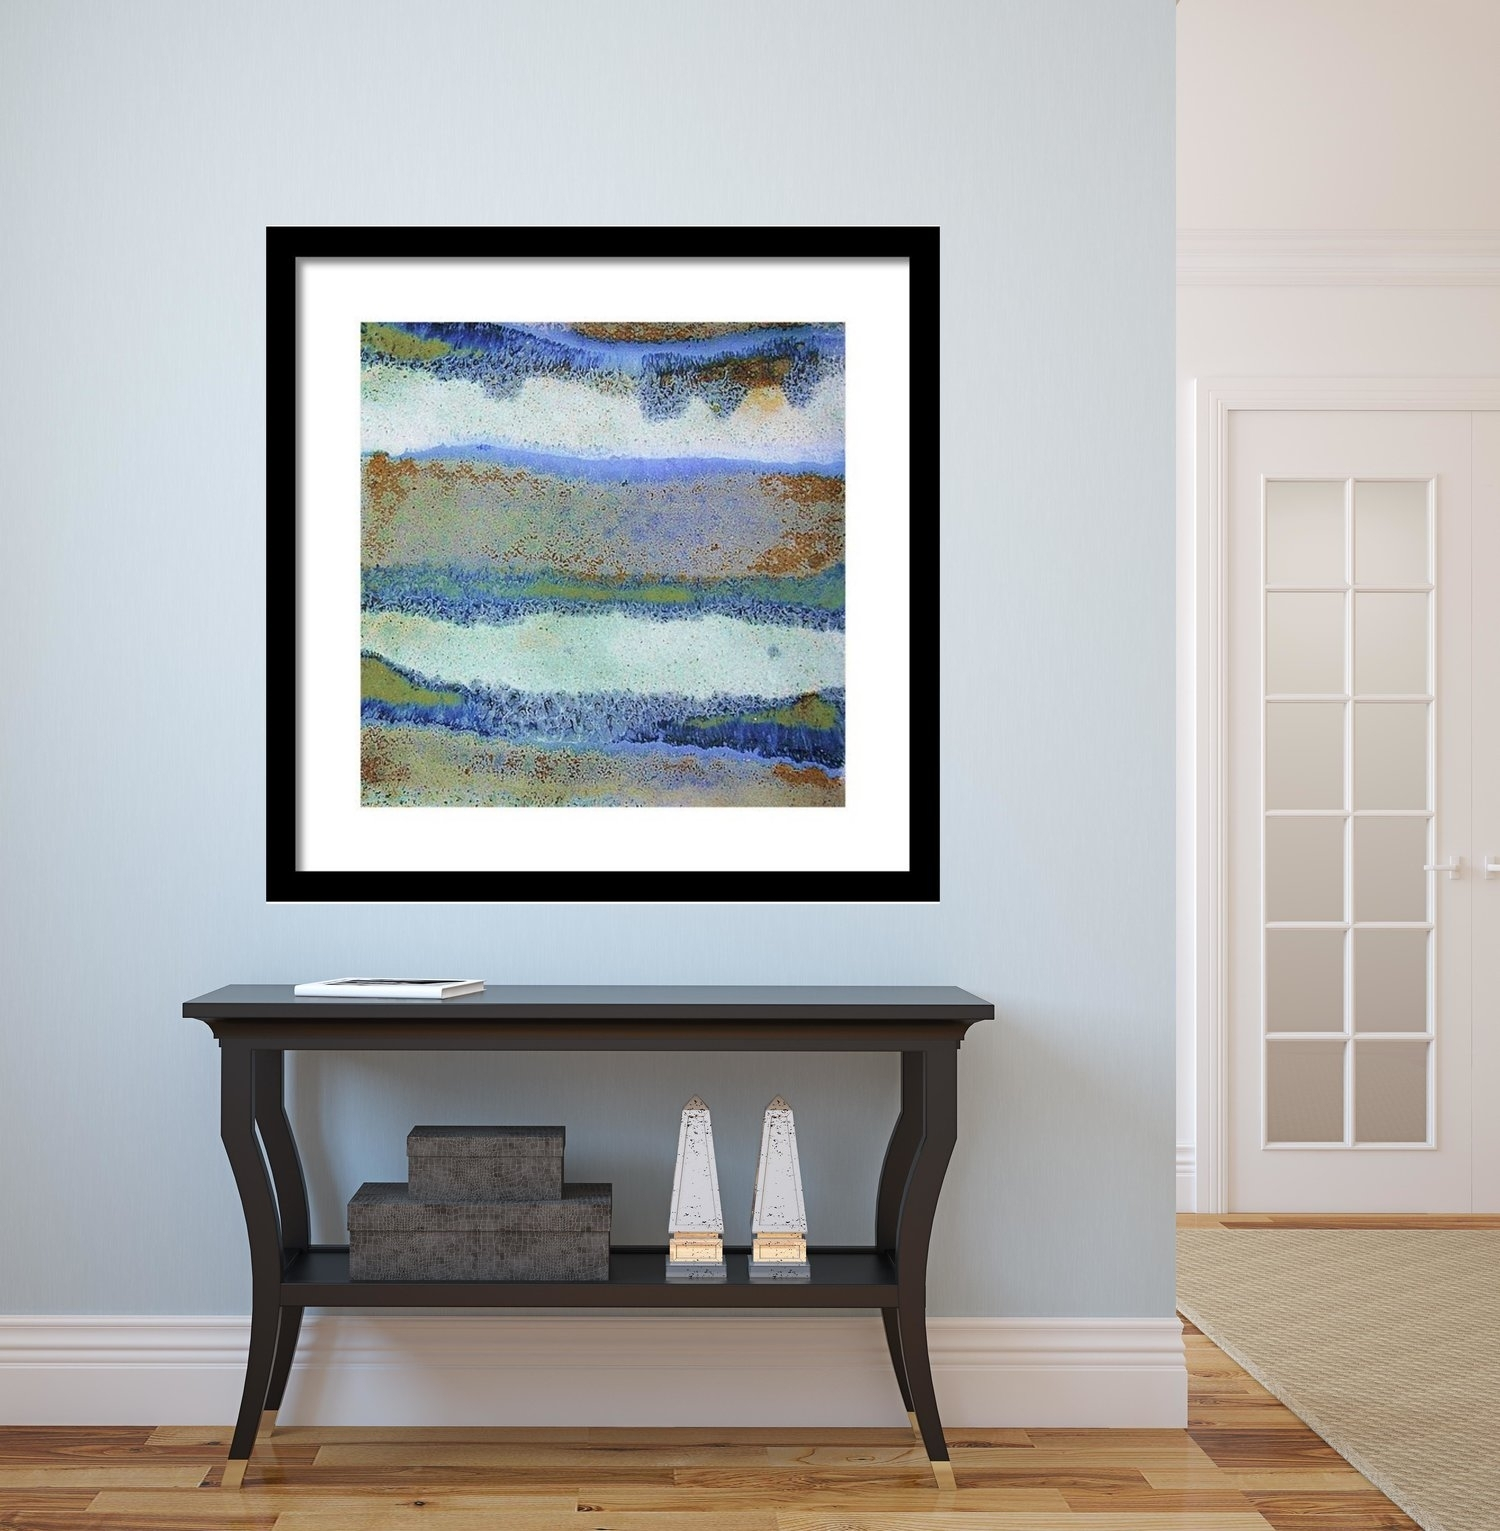 Explore Photos of Abstract Framed Art Prints (Showing 10 of 15 Photos)